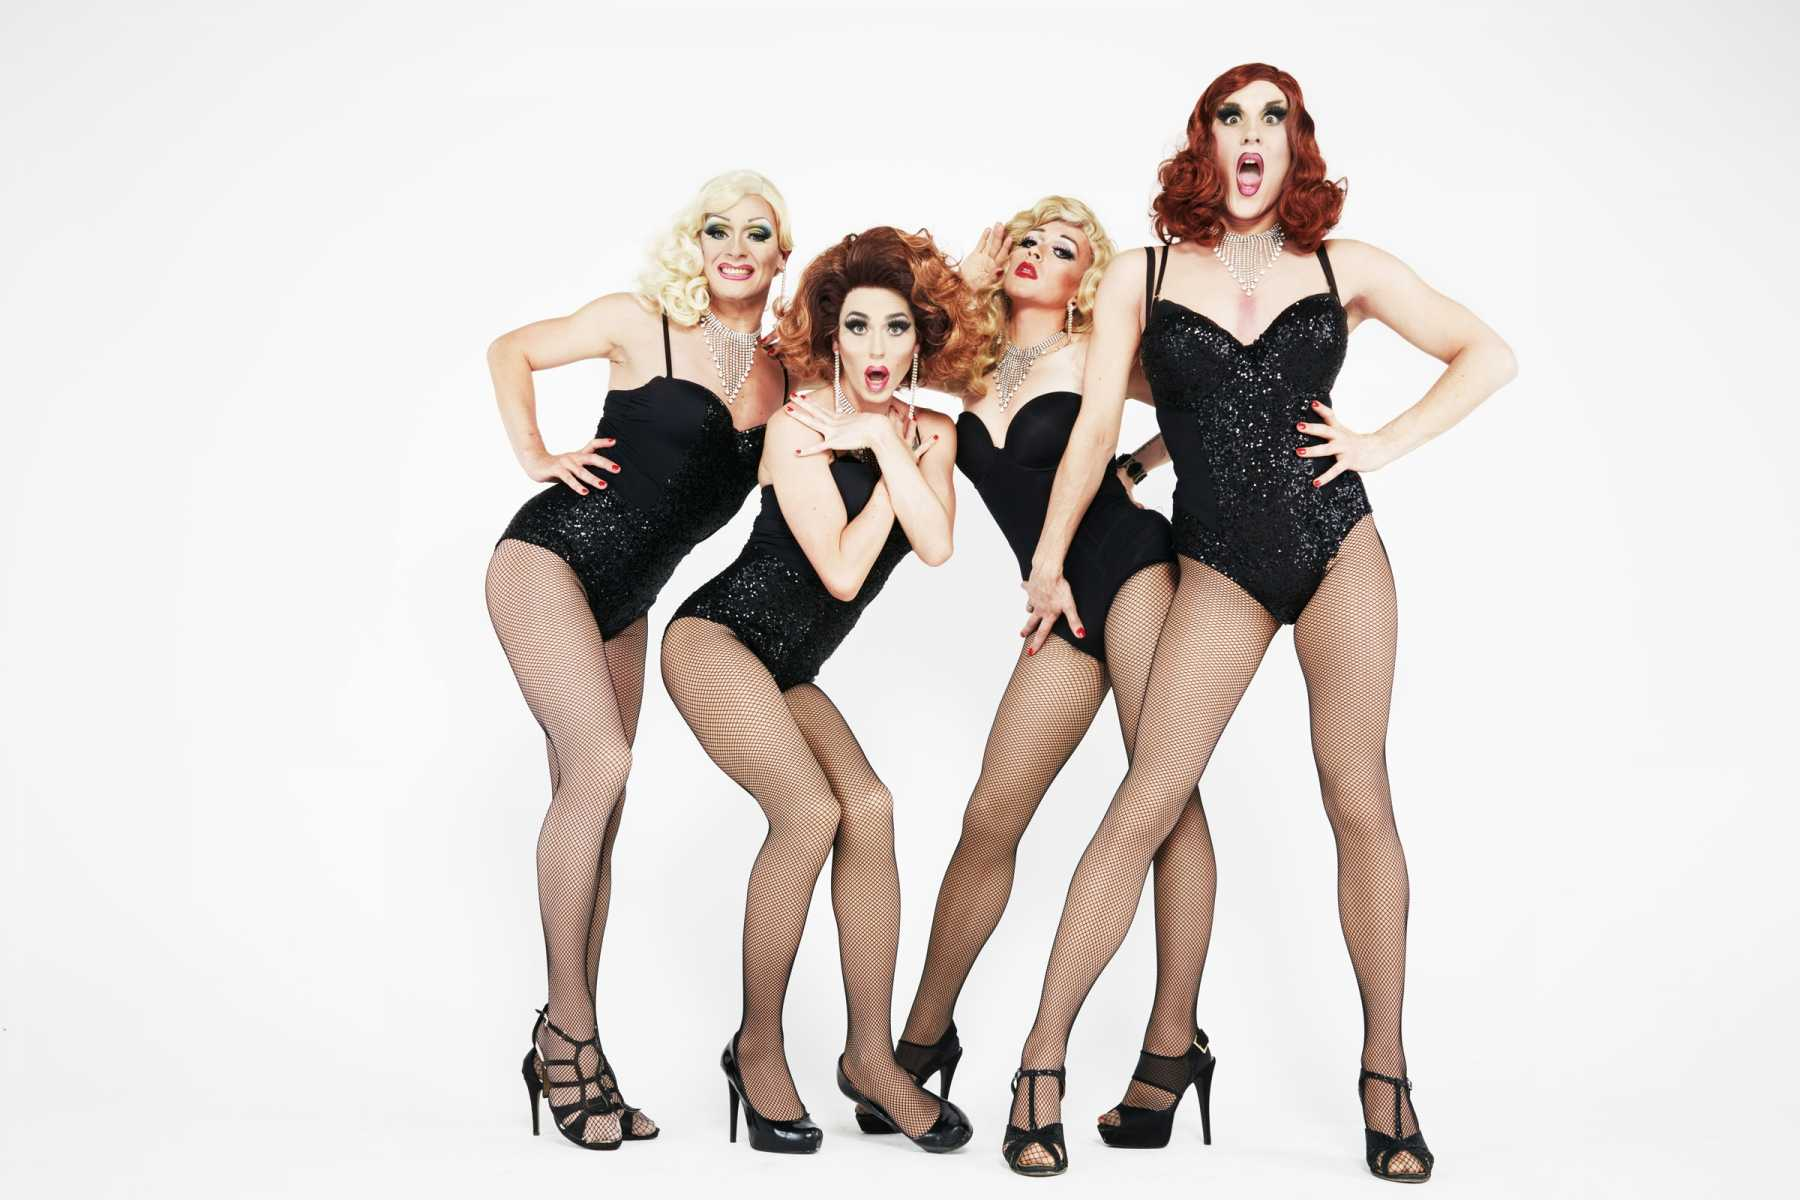 Curtain Up, Stilettoes On! Stars Of Drag Queens Of London Take Over The West End Stage